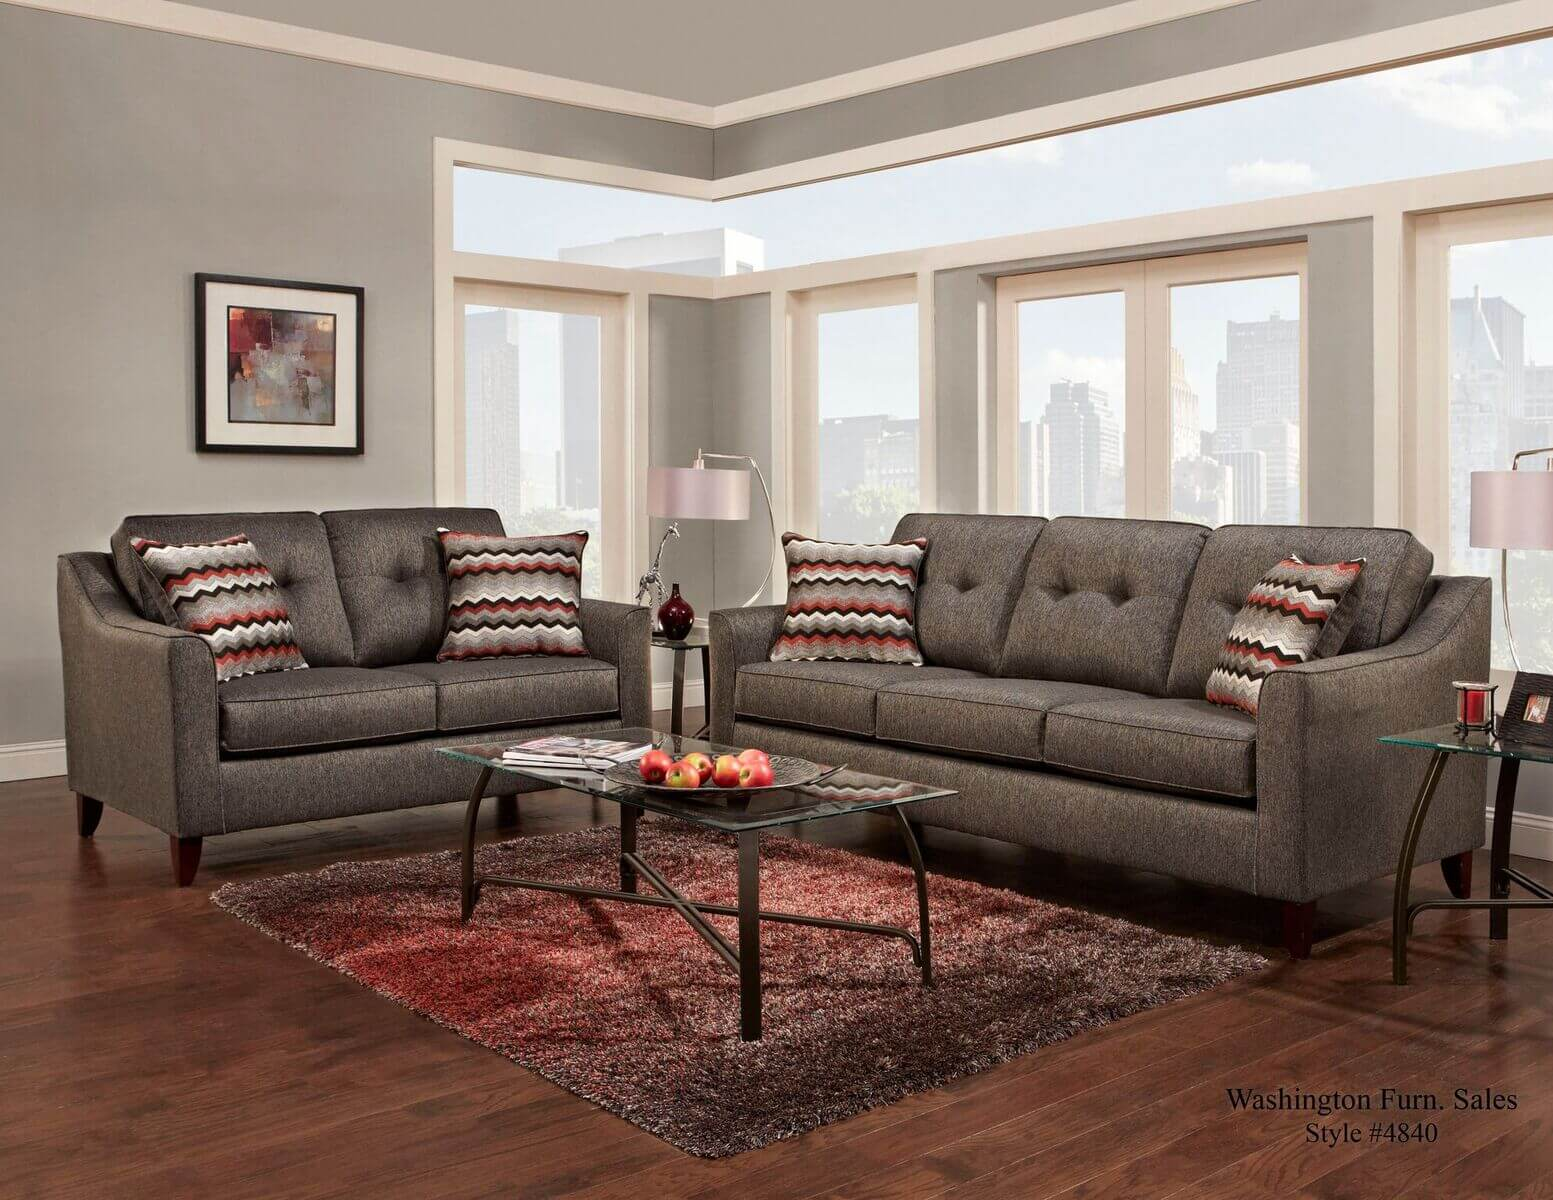 Swell 4840 Stoked Ash Sofa And Loveseat By Washington Discontinued Pabps2019 Chair Design Images Pabps2019Com